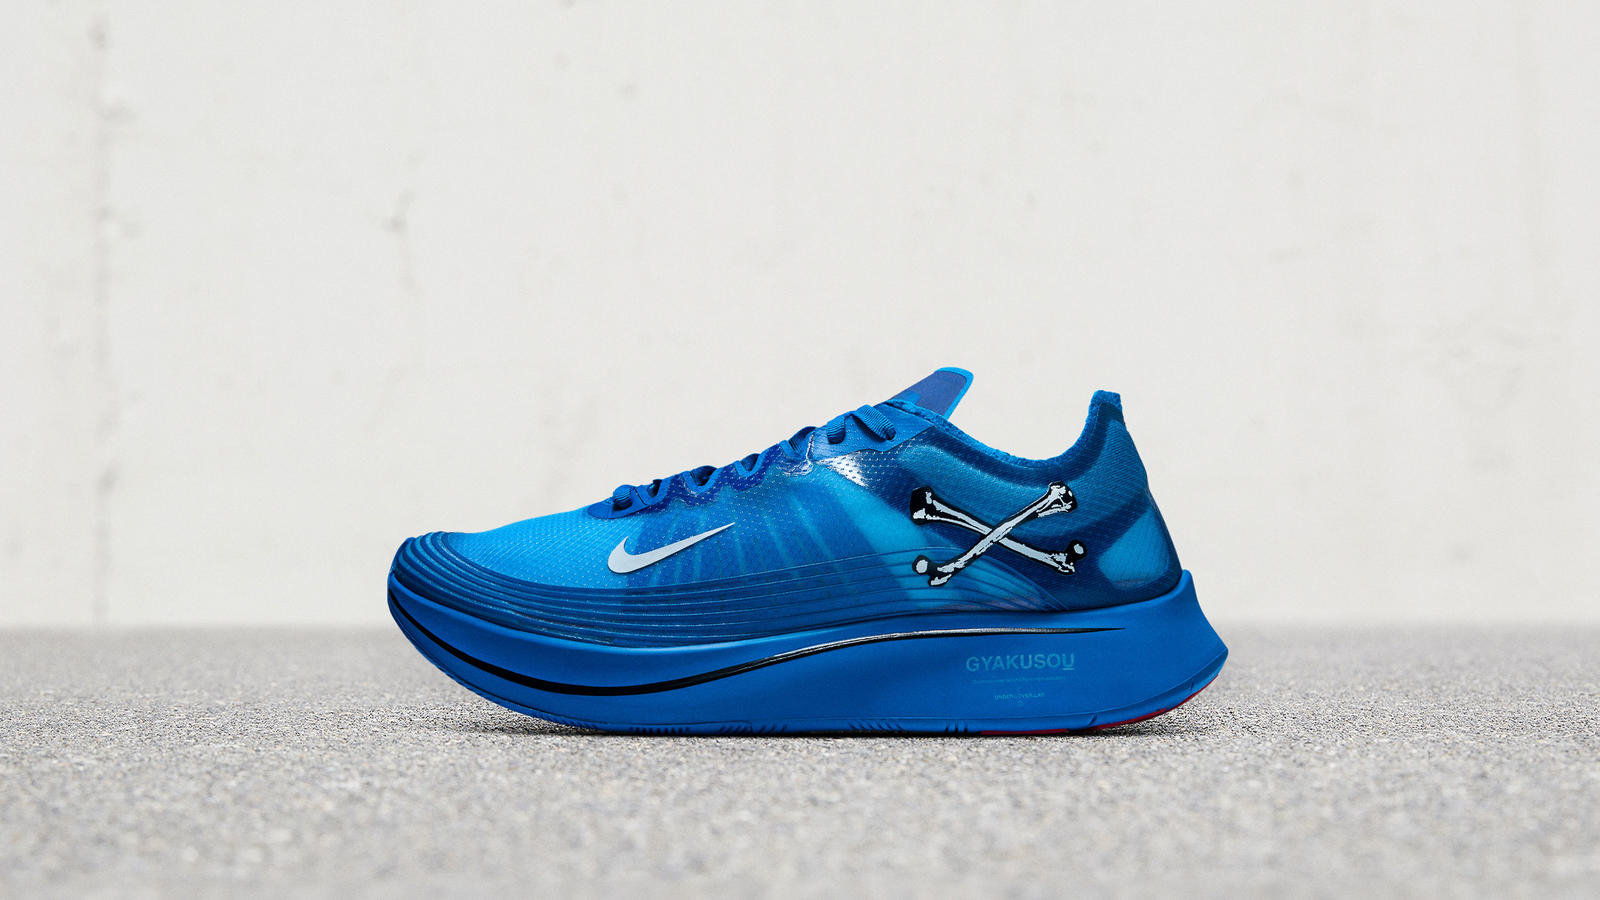 Featuredfootwear zoomfly gyakusou 240 re hd 1600